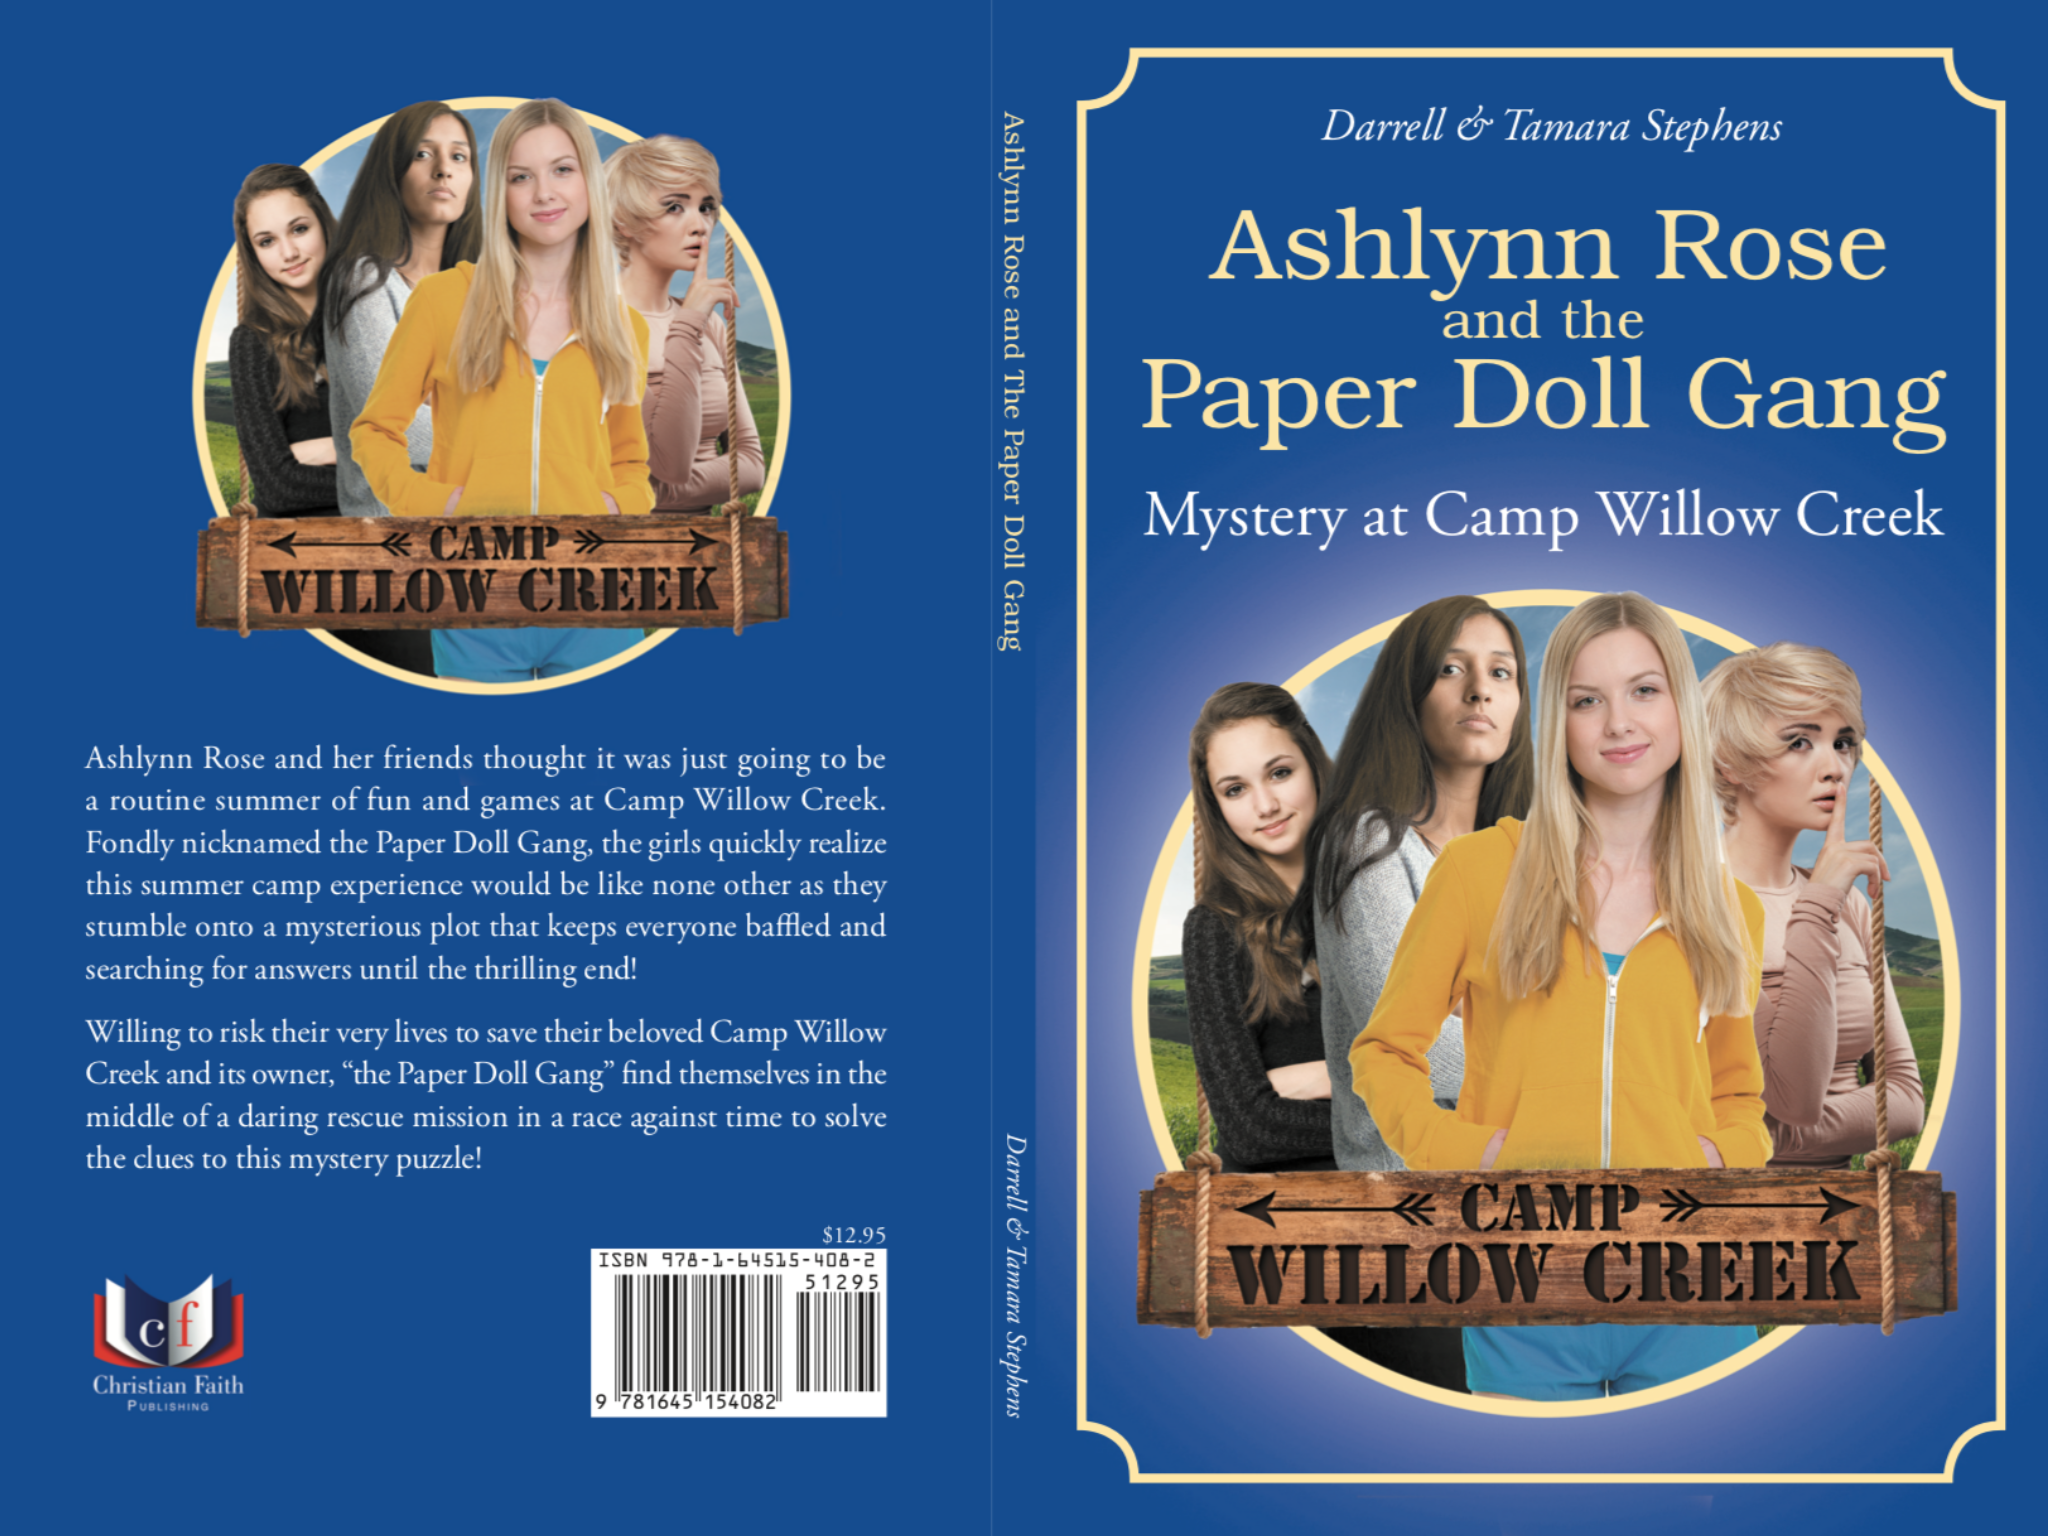 Ashlynn Rose and the Paper Doll Gang